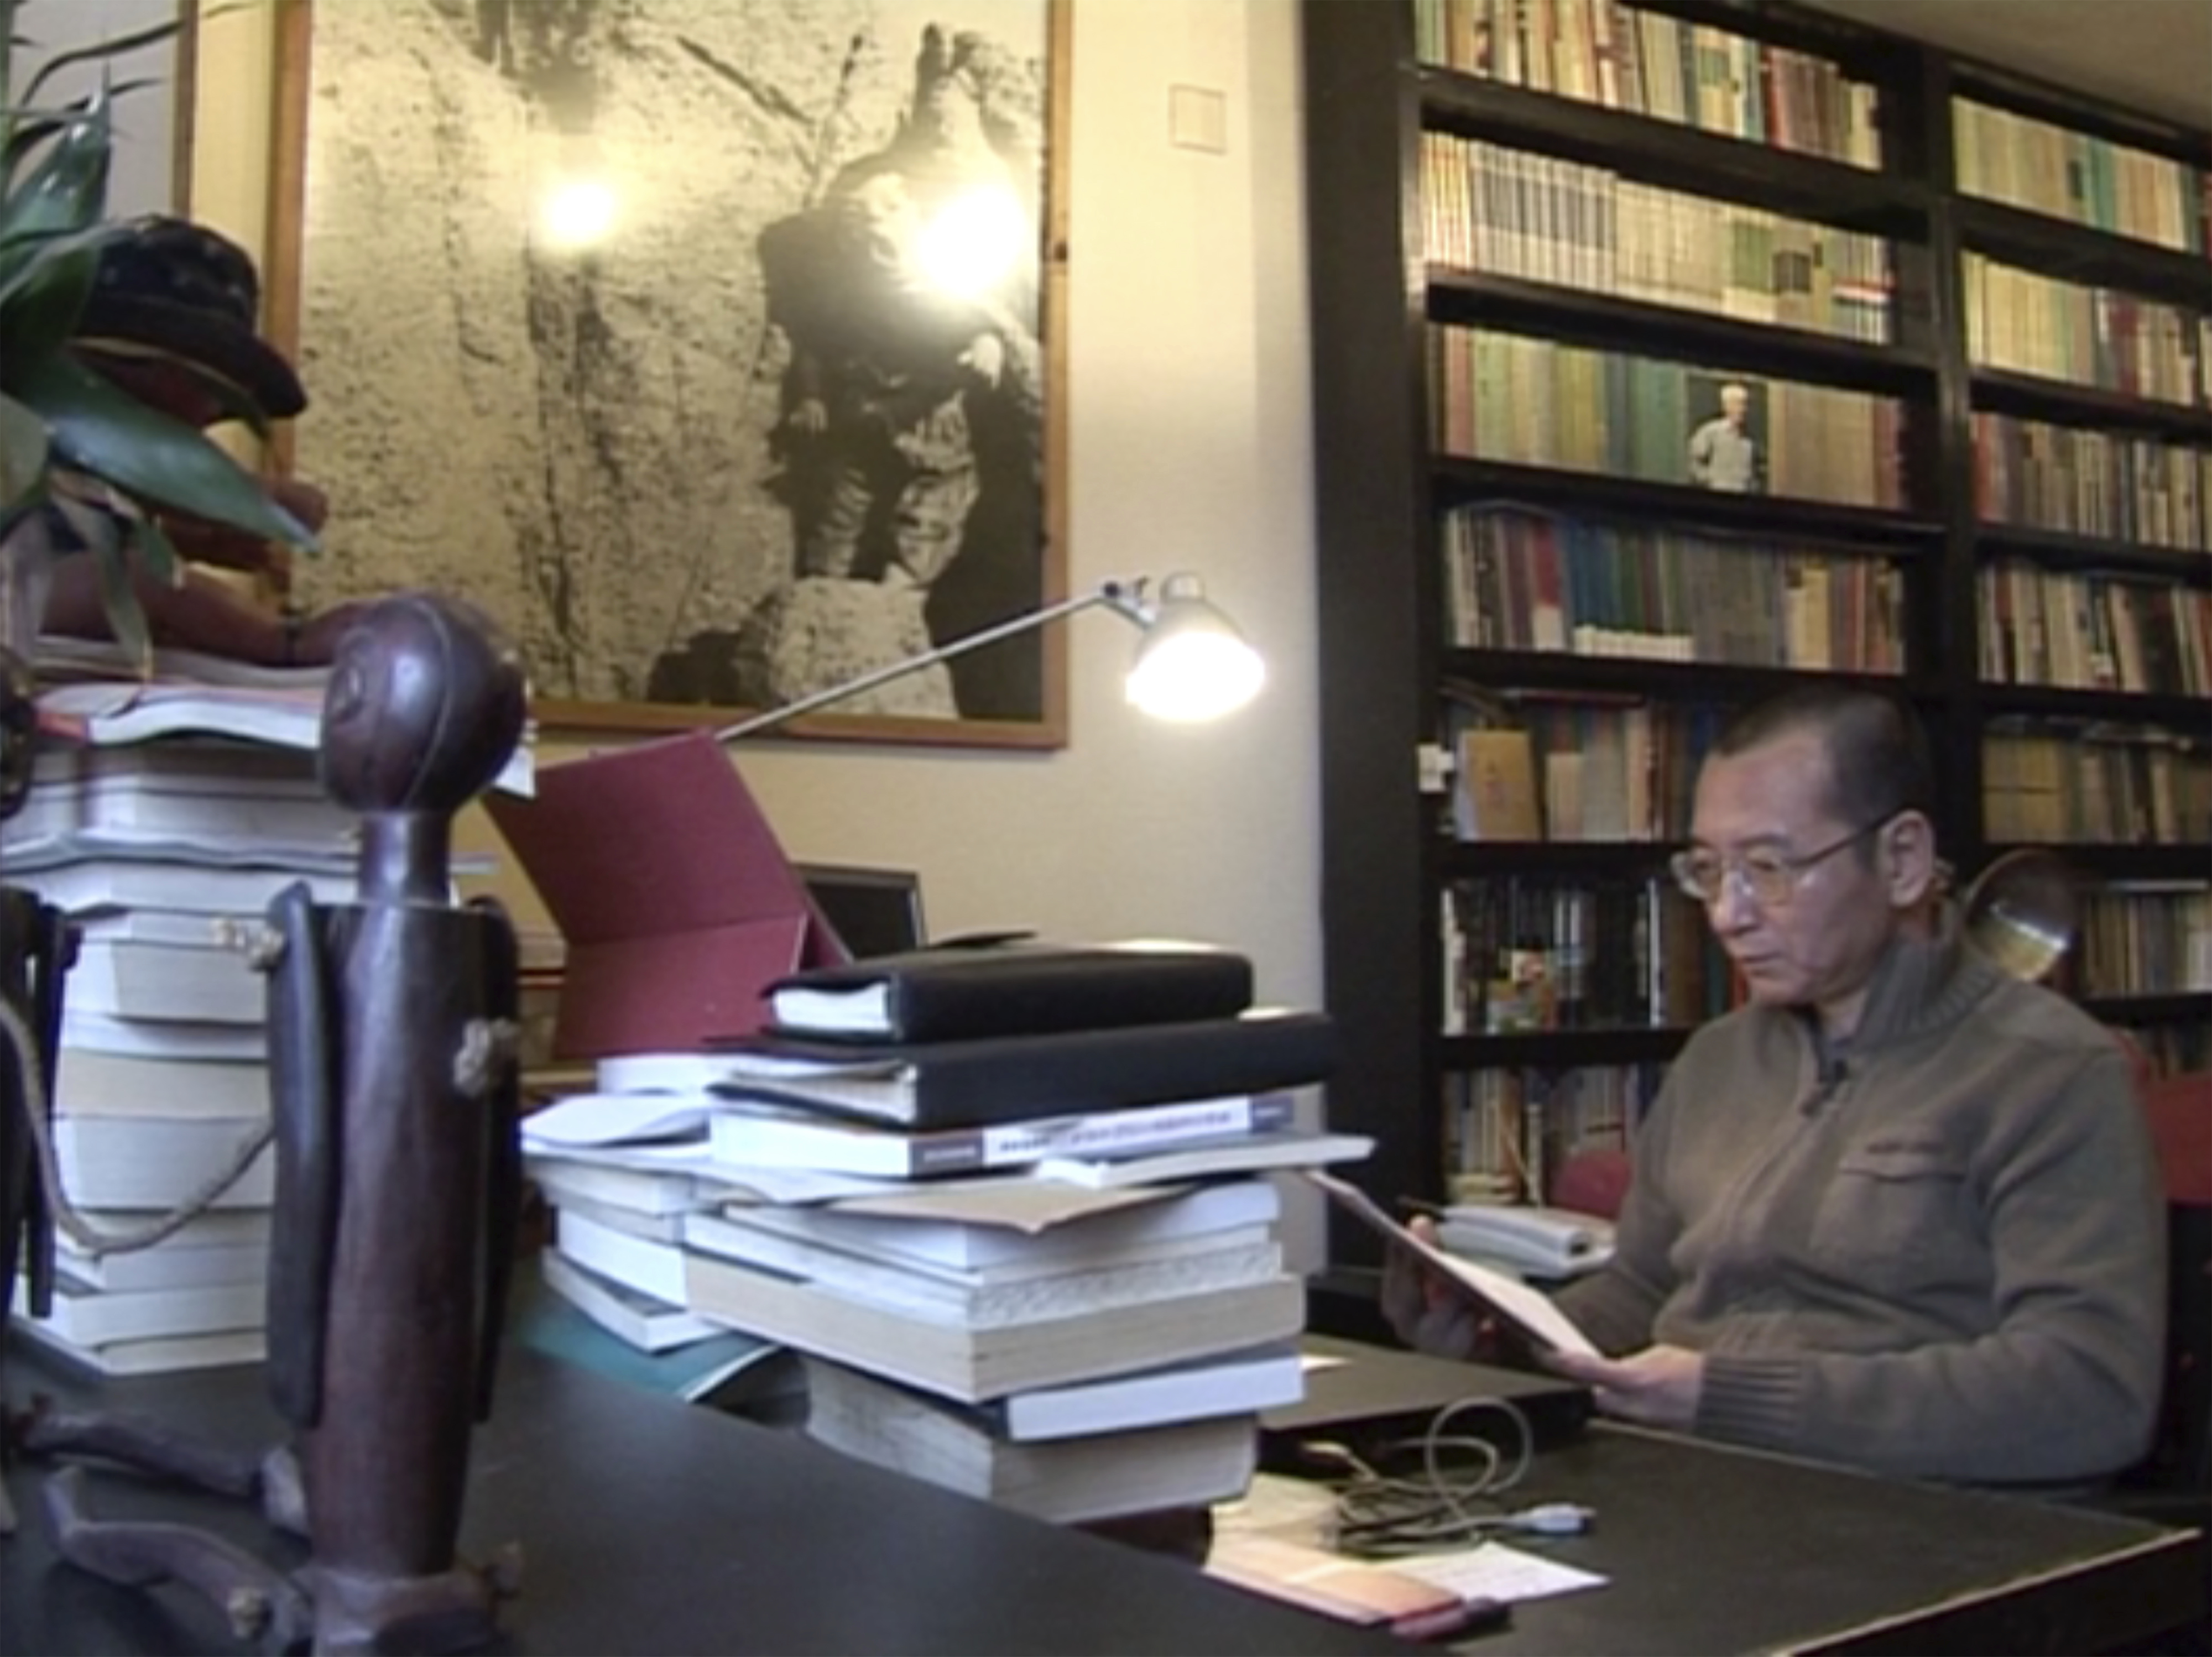 In this image taken from Jan. 6, 2008, video footage by AP Video, Liu Xiaobo looks at documents in his home in Beijing, China. At various times until his final incarceration in 2008, Liu Xiaobo's career as a lecturer, writer and literary critic intersected with China's pro-democracy movement that has been harried at every turn by the repressive powers of the one-party Communist state. (AP Video via AP)